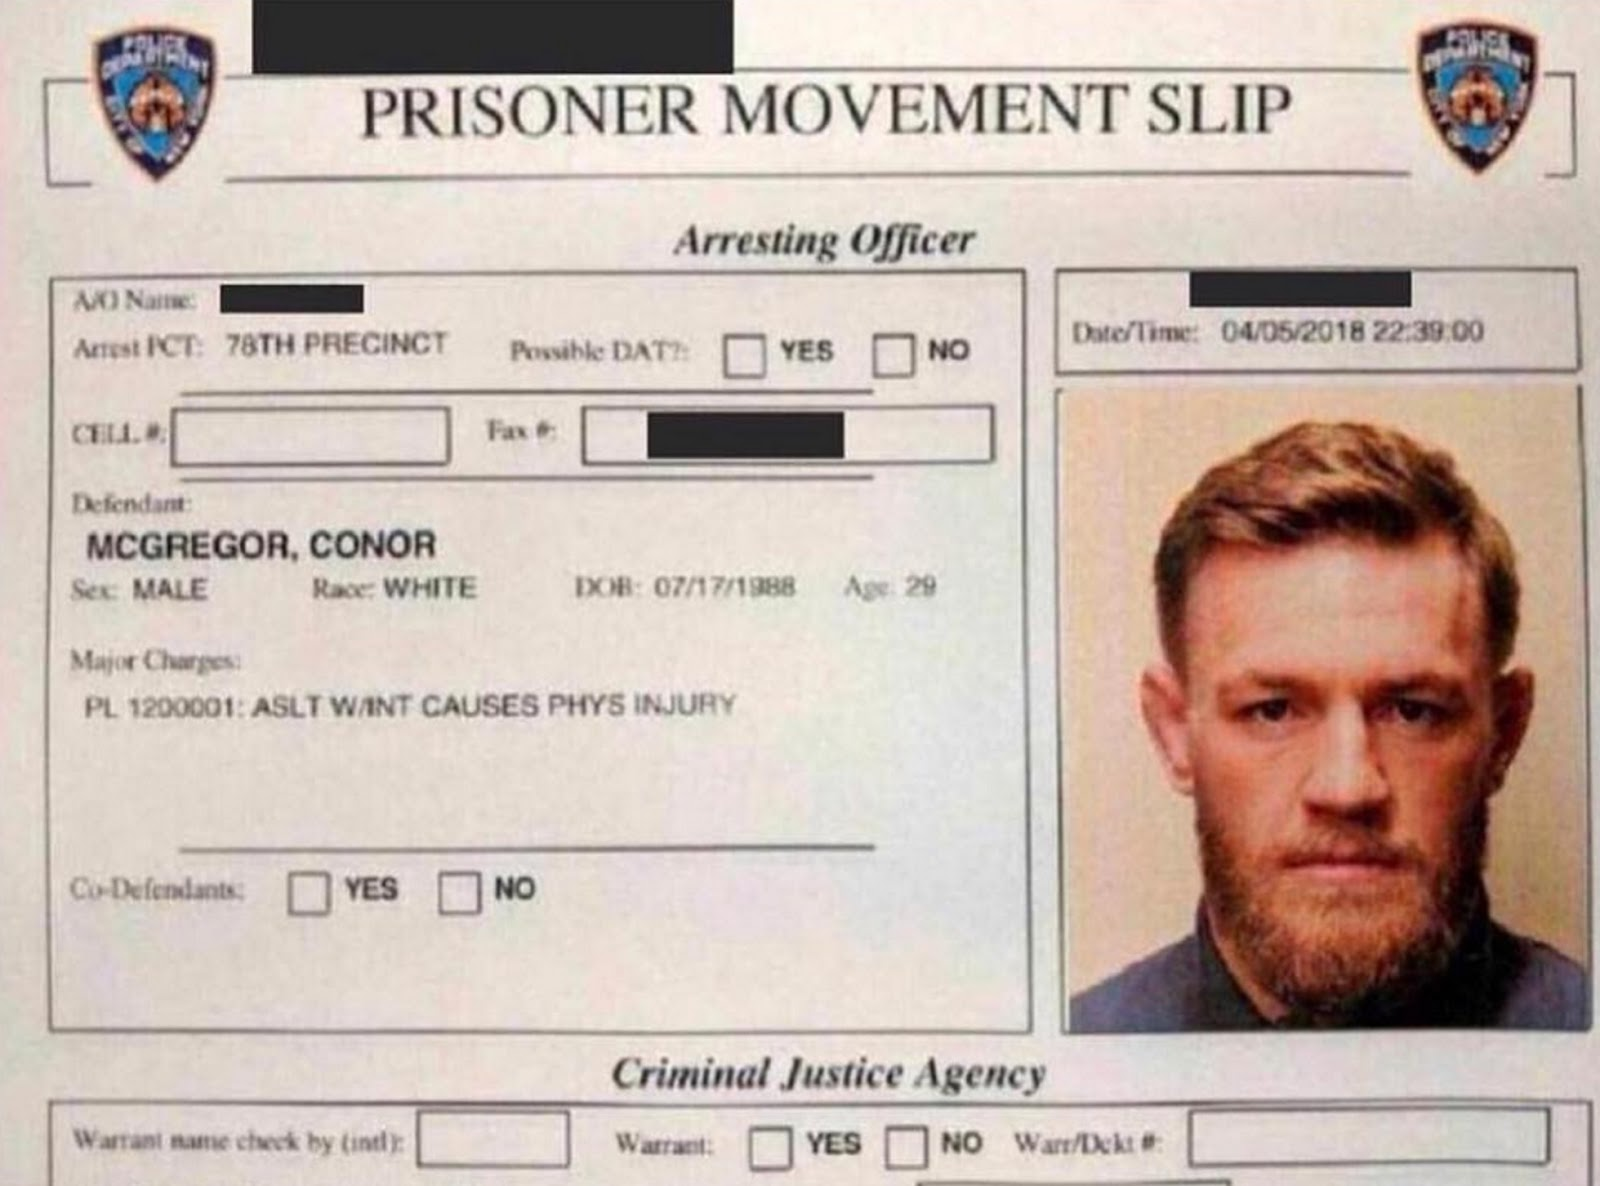 CONOR MCGREGOR 5